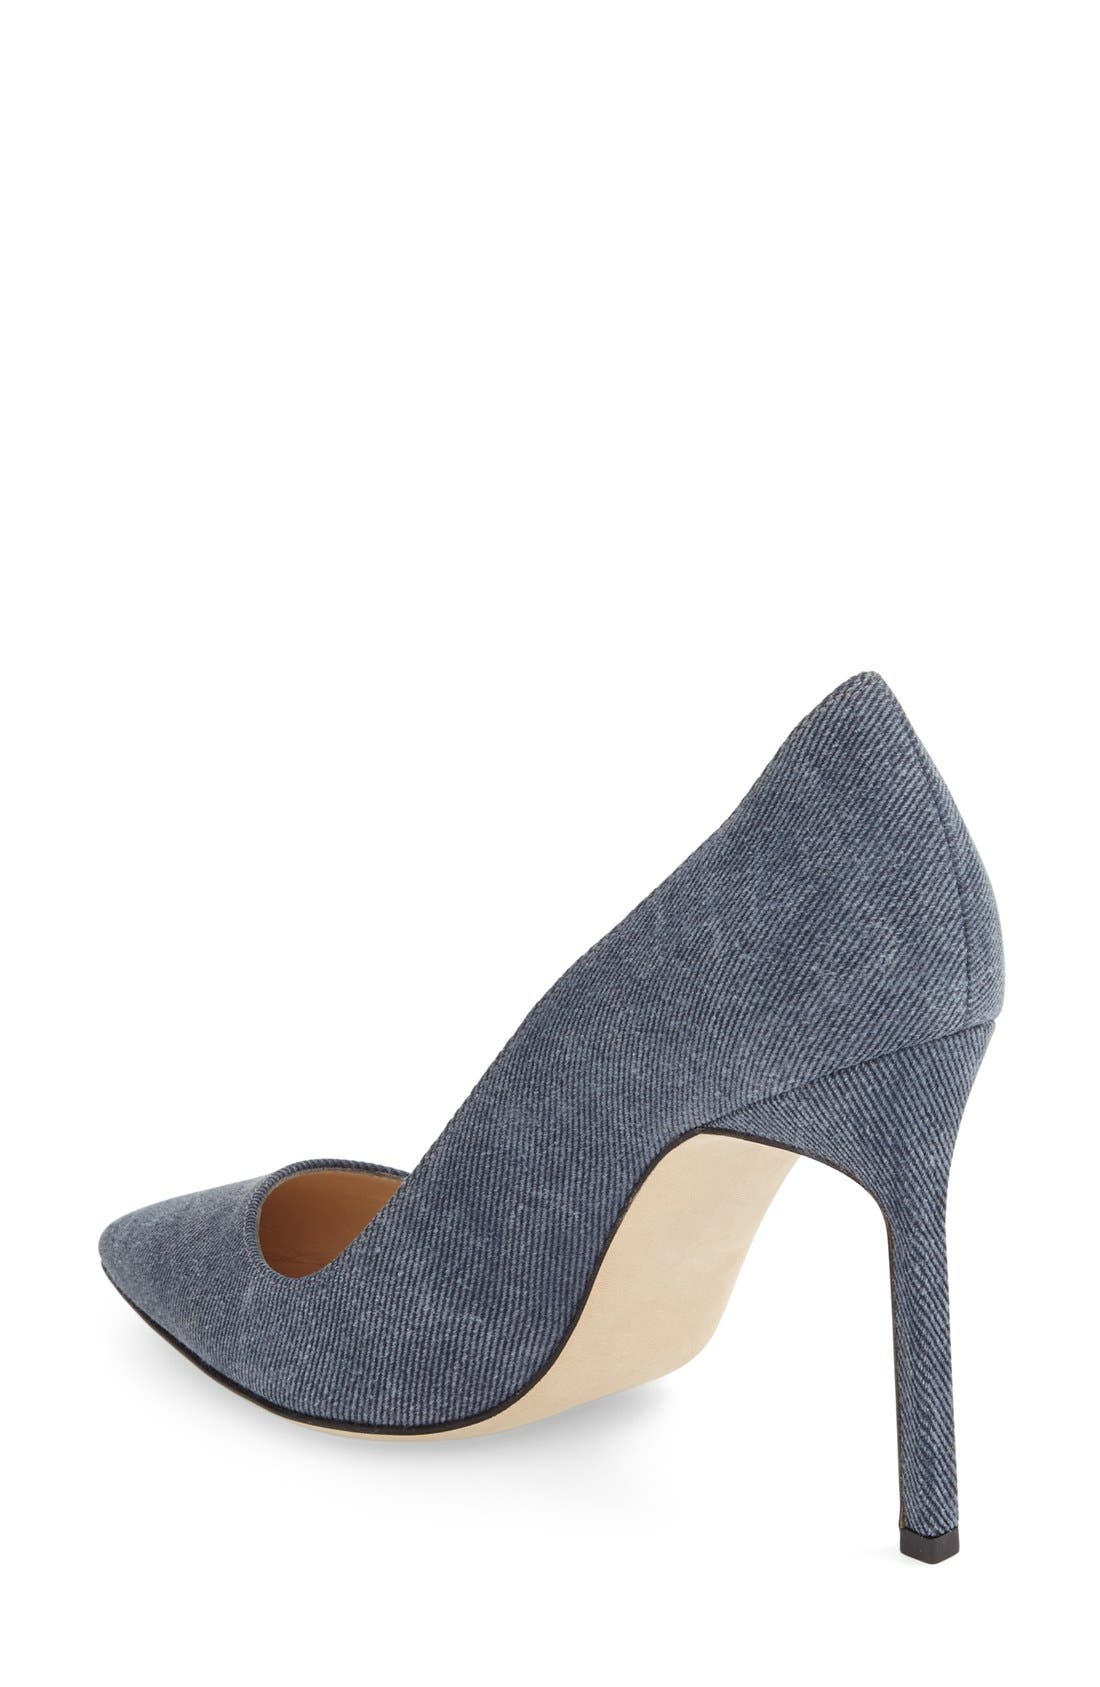 BB Pointy Toe Pump,                             Alternate thumbnail 22, color,